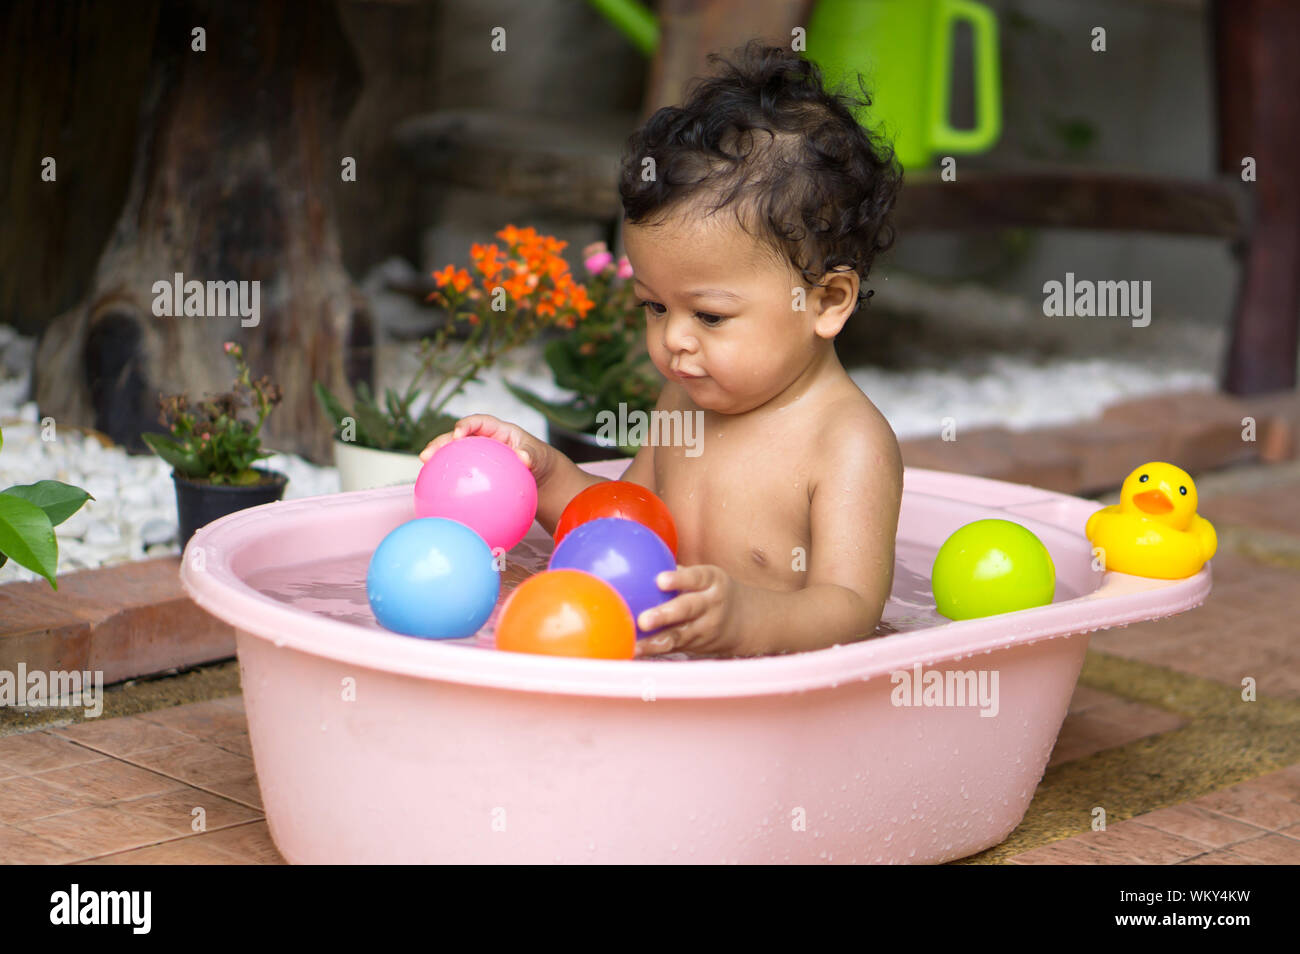 Shirtless Baby Boy Playing With Colorful Balls In Bathtub Stock Photo